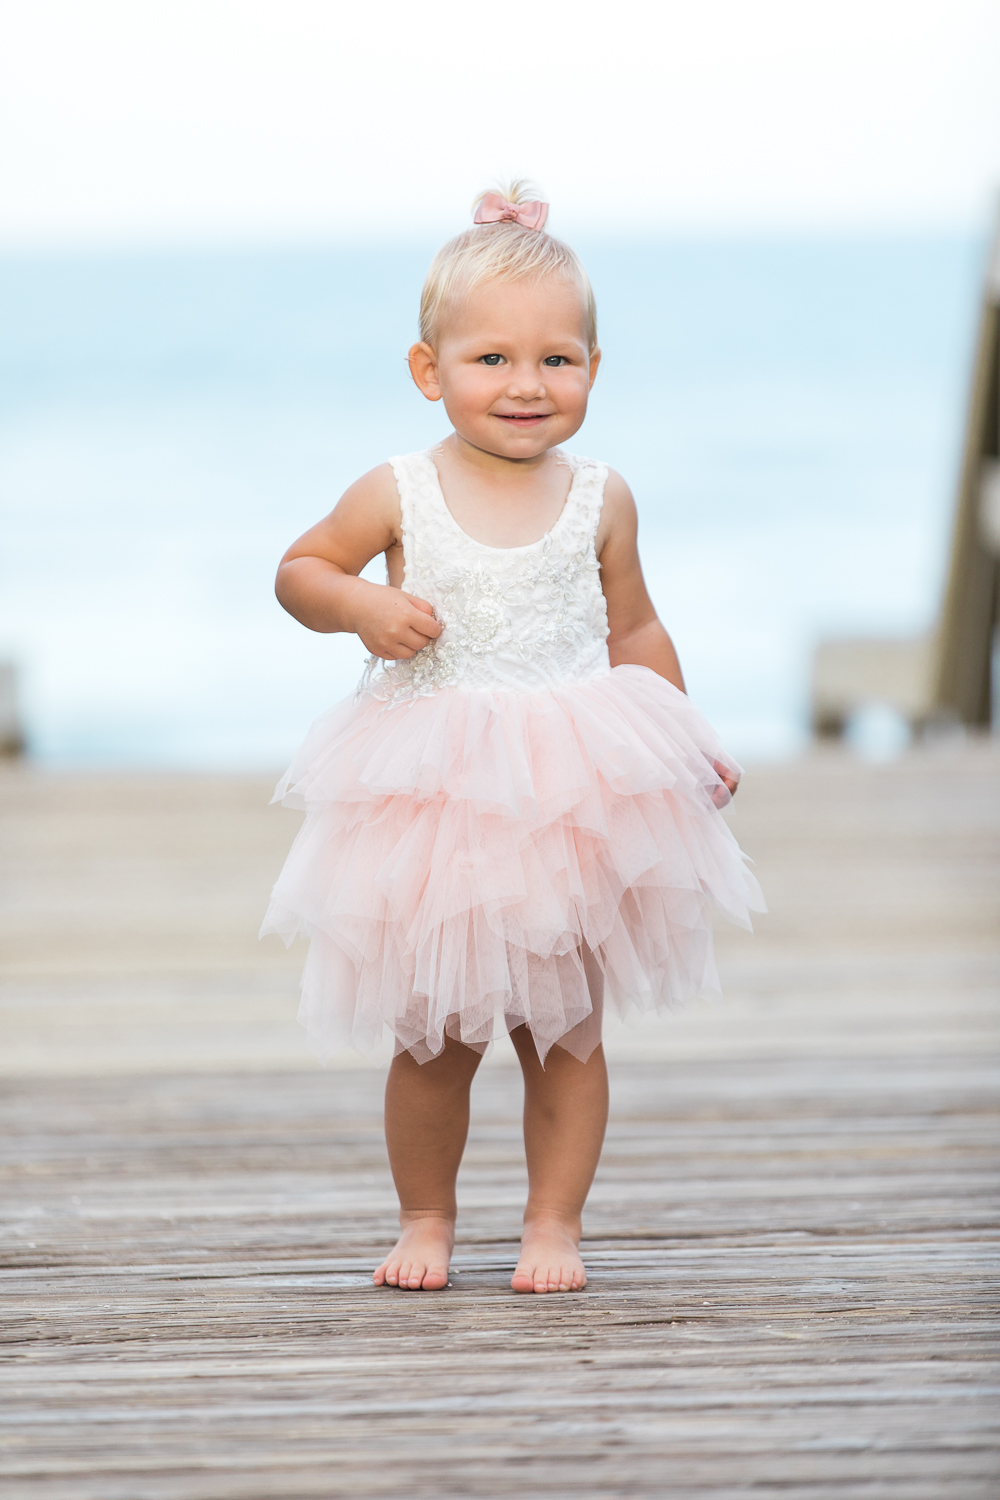 photoshoot outfit ideas for toddlers